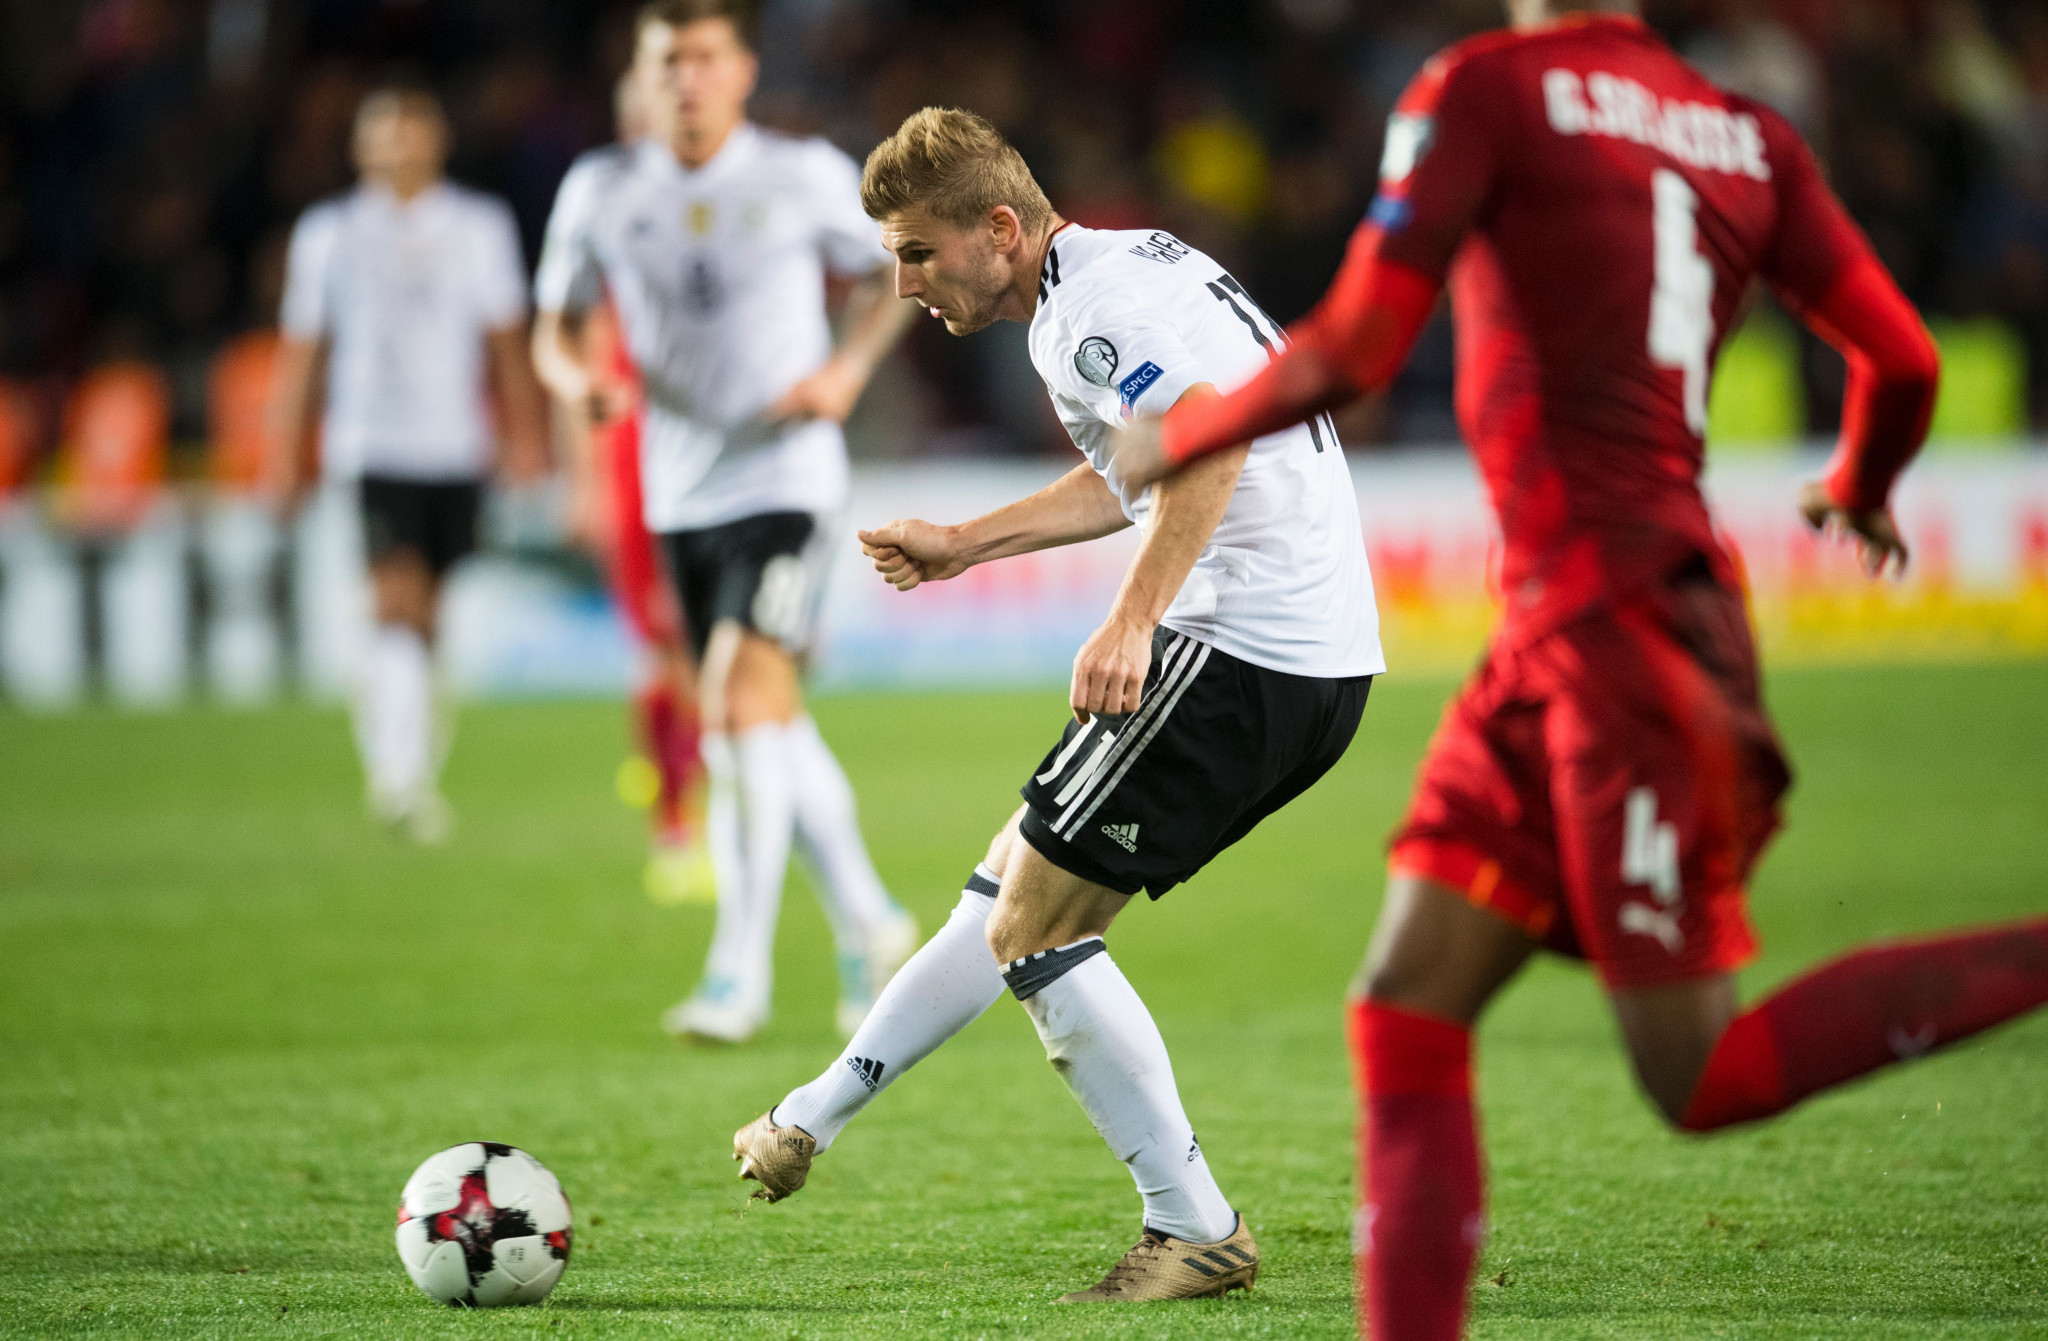 Timo Werner, who scored one of the Germany goals, was abused by his own supporters during the match with the Czech Republic ©Getty Images